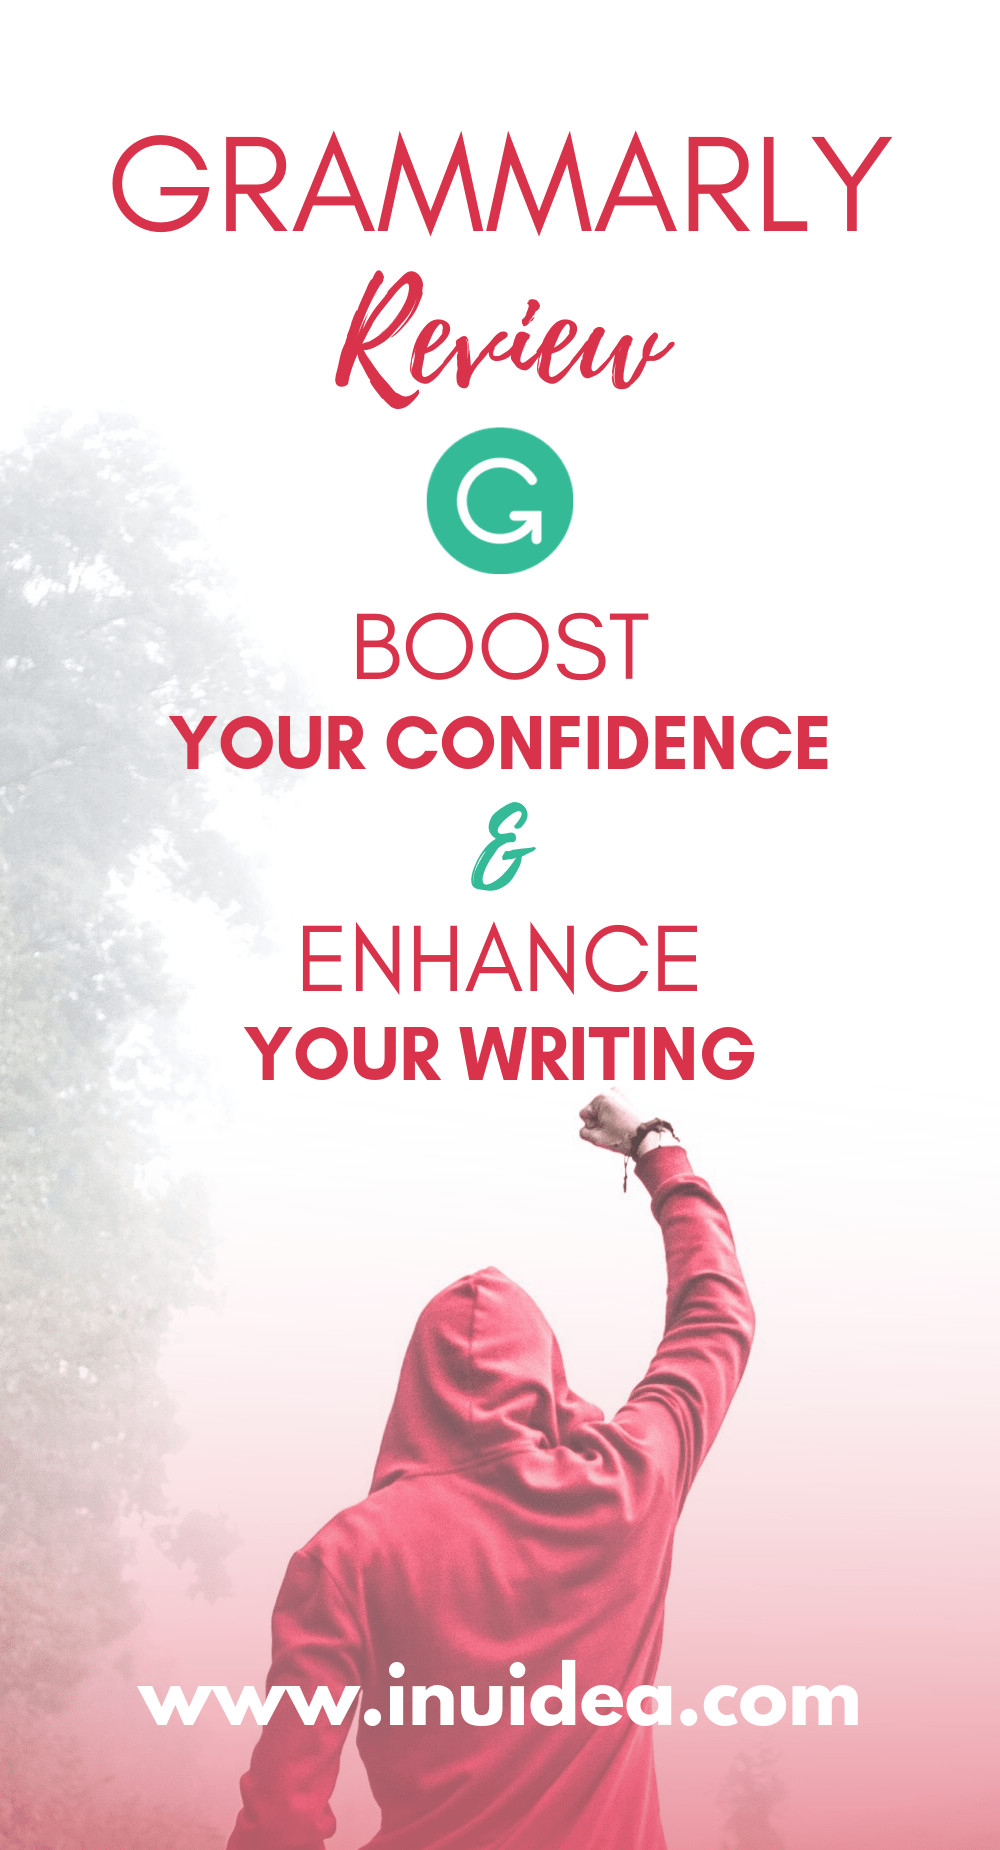 Buy Grammarly Proofreading Software Retail Price